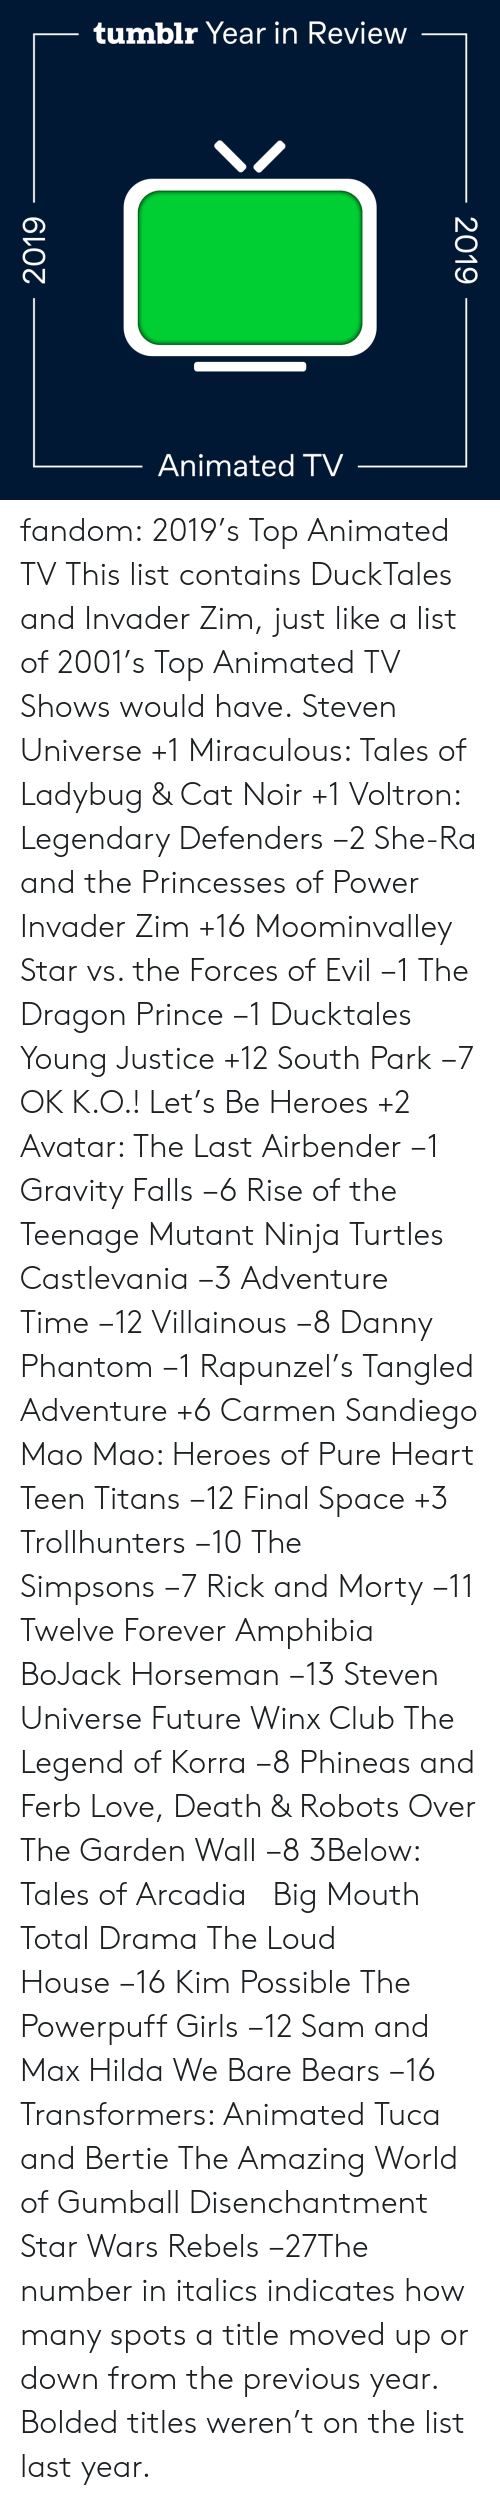 teenage: tumblr Year in Review  Animated TV  2019  2019 fandom:  2019's Top Animated TV  This list contains DuckTales and Invader Zim, just like a list of 2001's Top Animated TV Shows would have.  Steven Universe +1  Miraculous: Tales of Ladybug & Cat Noir +1  Voltron: Legendary Defenders −2  She-Ra and the Princesses of Power   Invader Zim +16  Moominvalley  Star vs. the Forces of Evil −1  The Dragon Prince −1  Ducktales  Young Justice +12  South Park −7  OK K.O.! Let's Be Heroes +2  Avatar: The Last Airbender −1  Gravity Falls −6  Rise of the Teenage Mutant Ninja Turtles  Castlevania −3  Adventure Time −12  Villainous −8  Danny Phantom −1  Rapunzel's Tangled Adventure +6  Carmen Sandiego  Mao Mao: Heroes of Pure Heart  Teen Titans −12  Final Space +3  Trollhunters −10  The Simpsons −7  Rick and Morty −11  Twelve Forever  Amphibia  BoJack Horseman −13  Steven Universe Future  Winx Club  The Legend of Korra −8  Phineas and Ferb  Love, Death & Robots  Over The Garden Wall −8  3Below: Tales of Arcadia    Big Mouth  Total Drama  The Loud House −16  Kim Possible  The Powerpuff Girls −12  Sam and Max  Hilda  We Bare Bears −16  Transformers: Animated  Tuca and Bertie  The Amazing World of Gumball  Disenchantment Star Wars Rebels −27The number in italics indicates how many spots a title moved up or down from the previous year. Bolded titles weren't on the list last year.